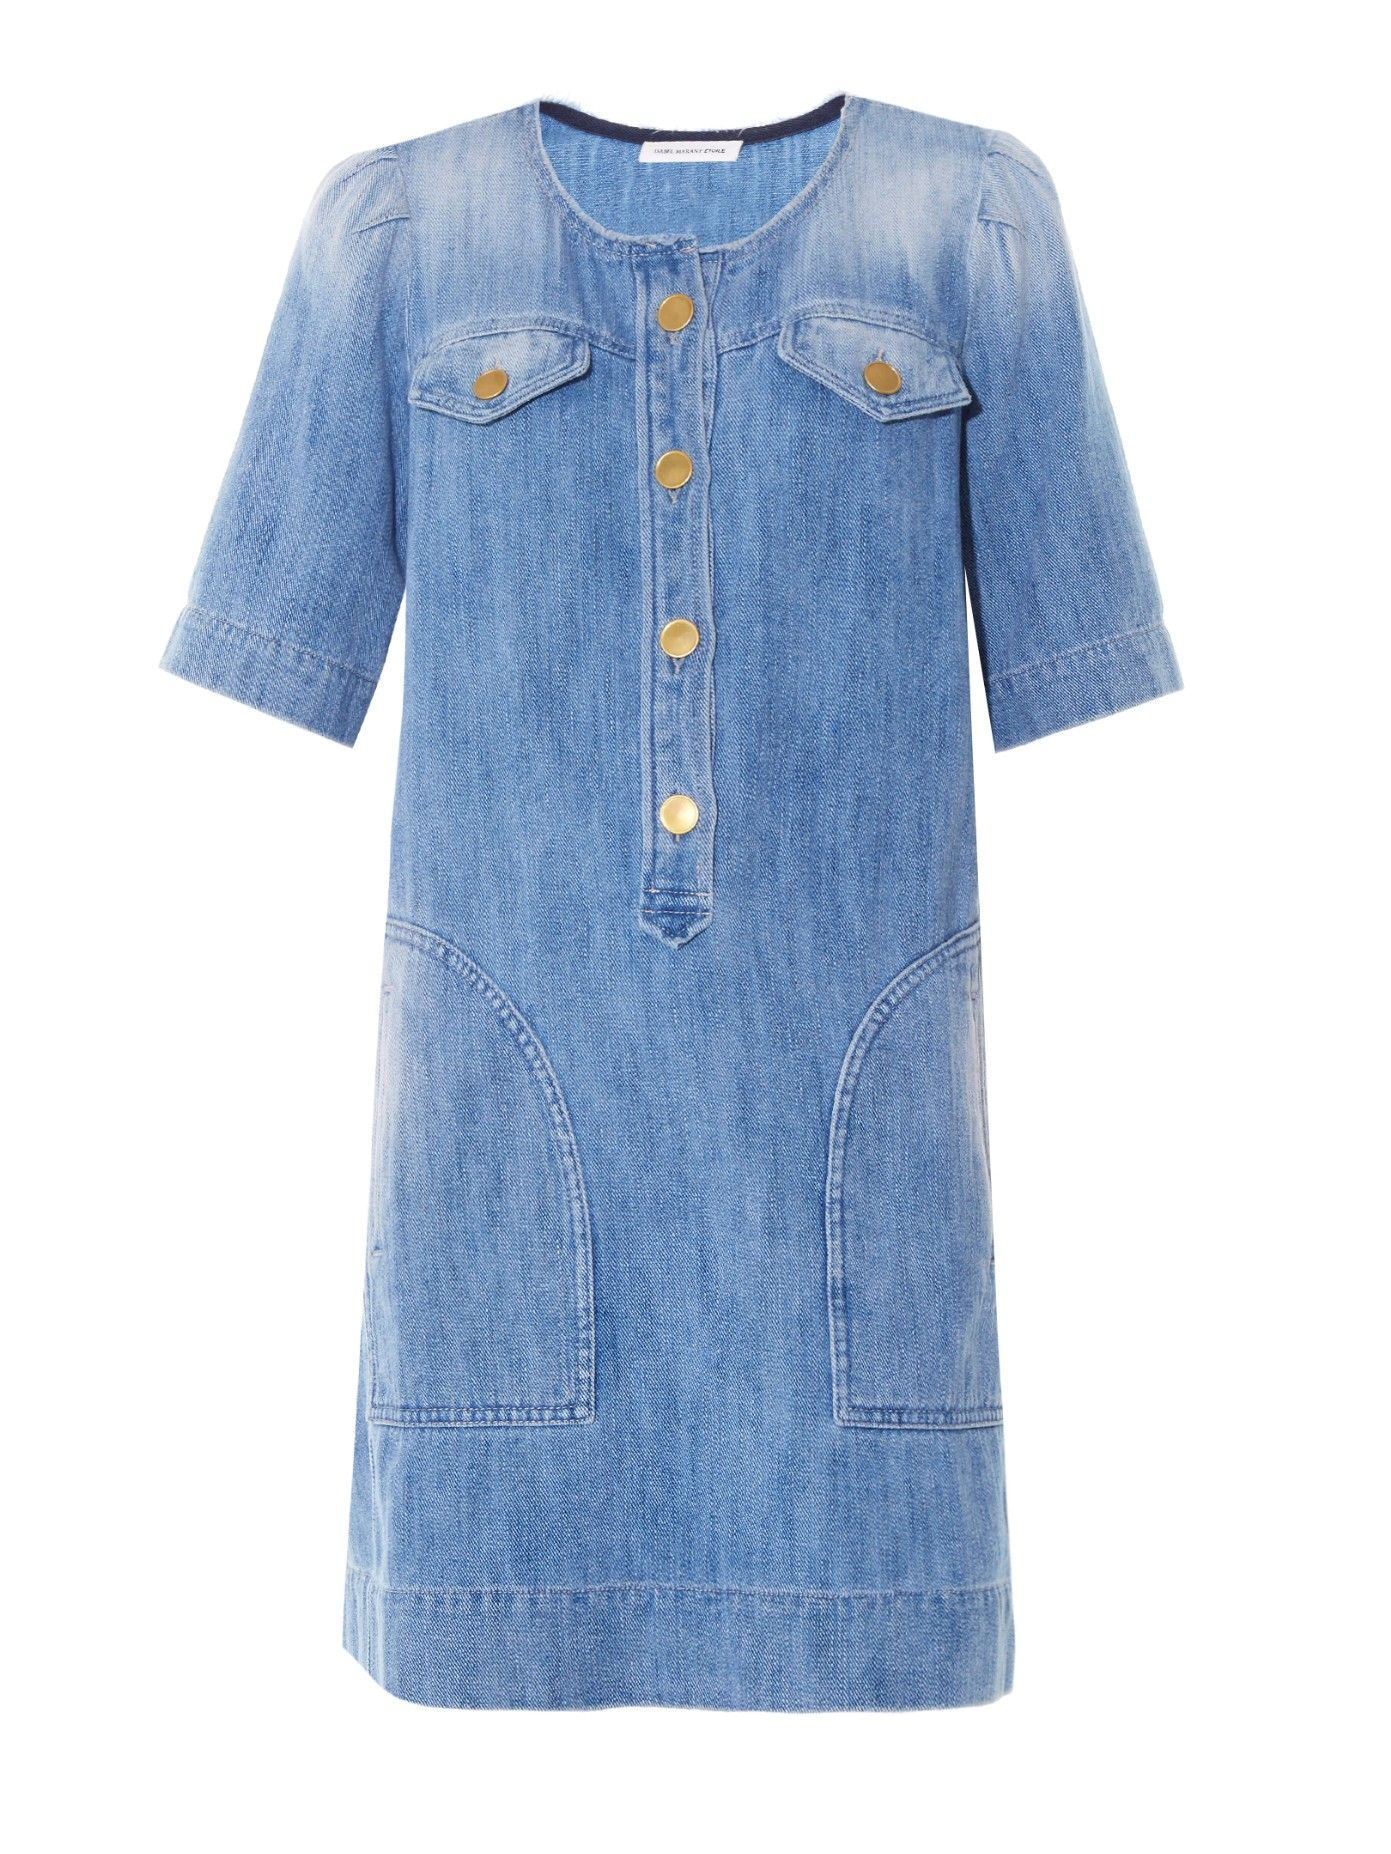 Oriane short-sleeved denim dress by Isabel Marant Étoile | Shop now at #MATCHESFASHION.COM